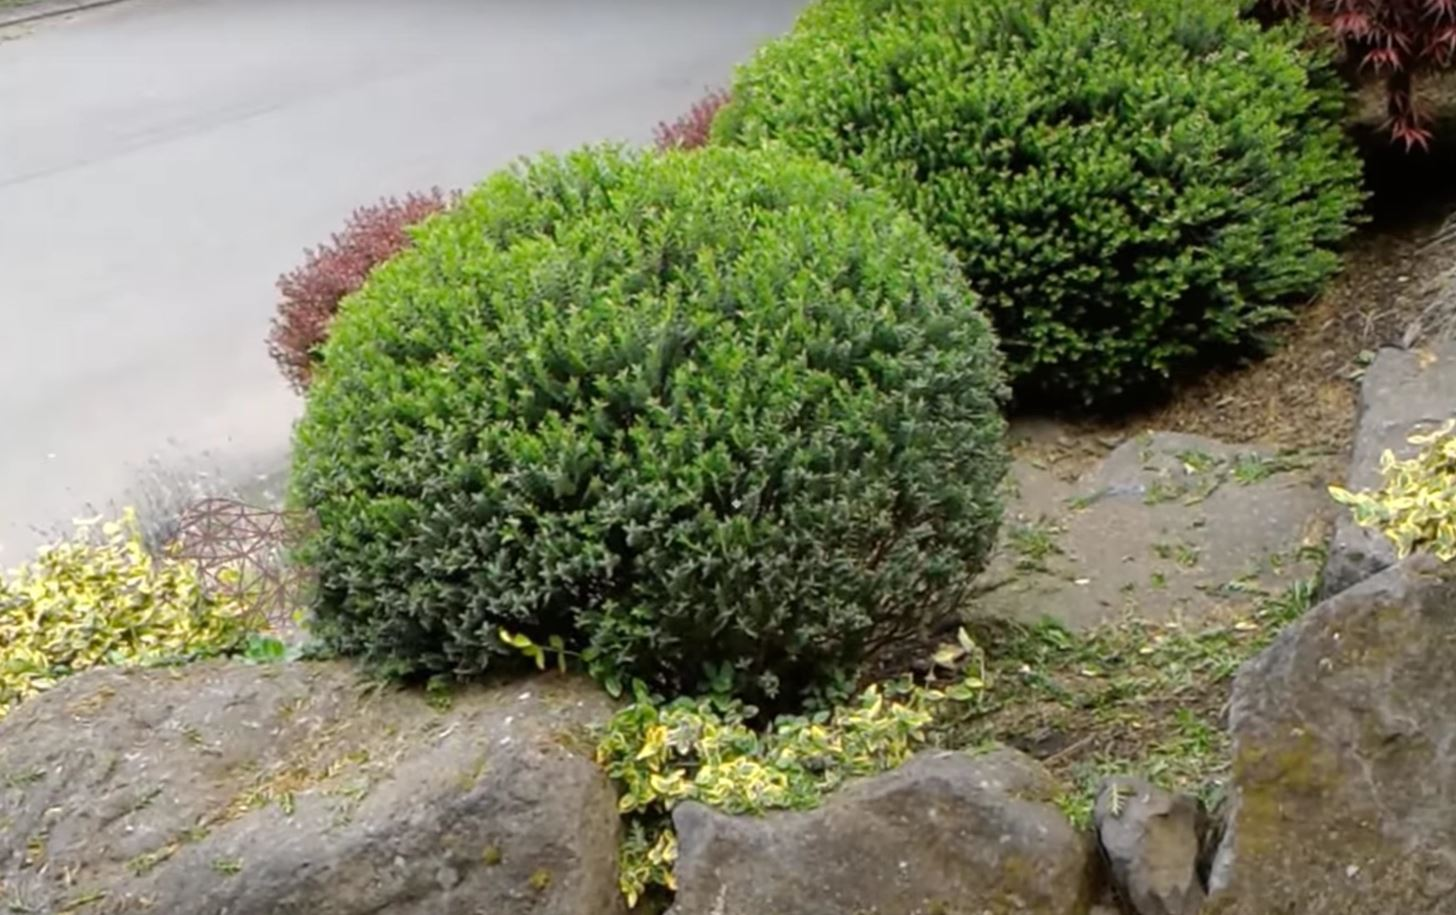 Javier Davalos Used the Microsoft HoloLens to Turn a Bush into a Perfect Sphere